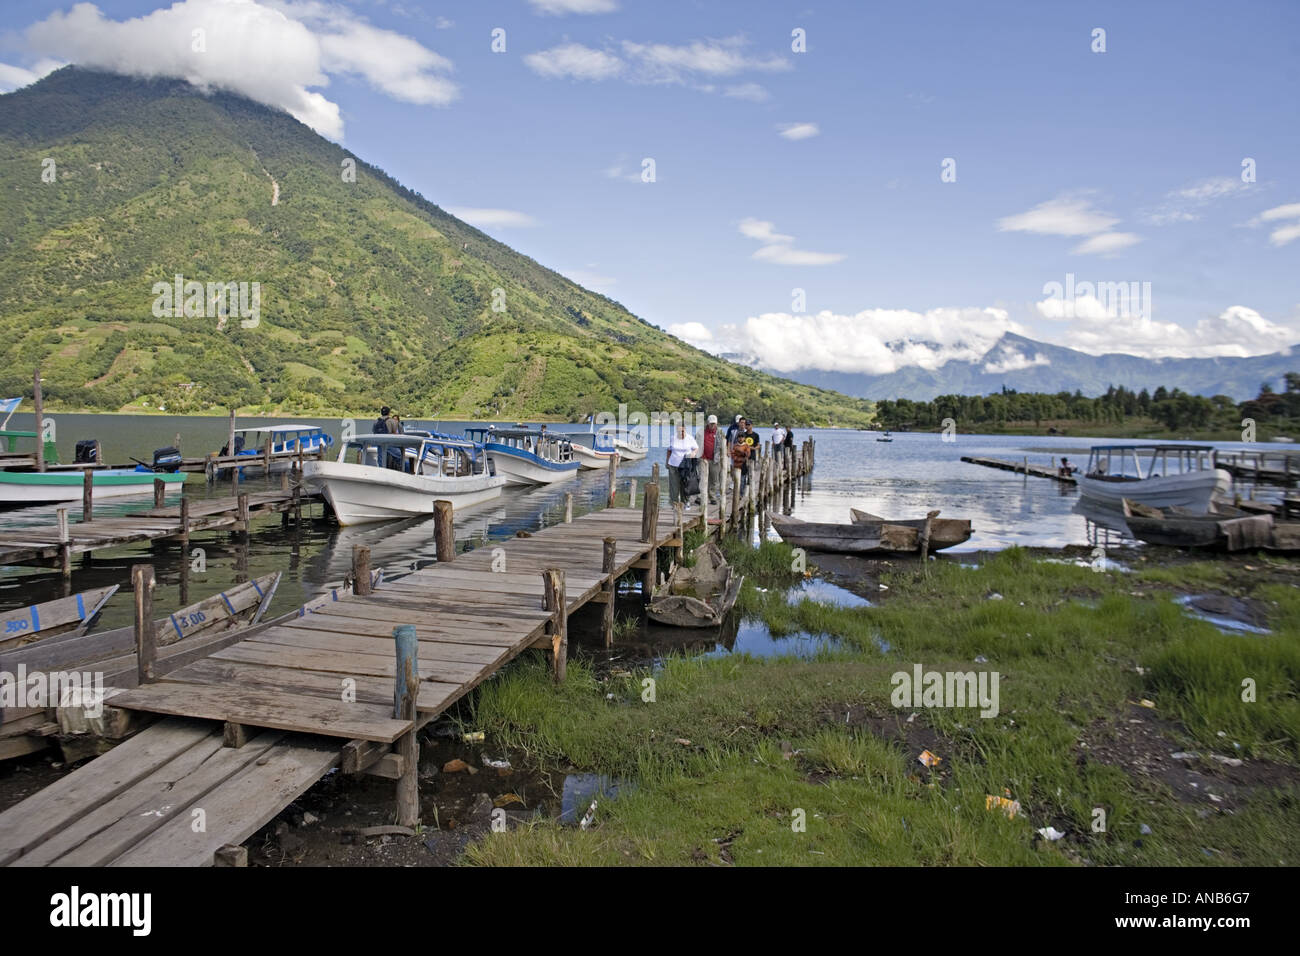 GUATEMALA SANTIAGO ATITLAN Group of tourists arriving by boat at the dock on Lake Atitlan at Santiago Attitlan - Stock Image